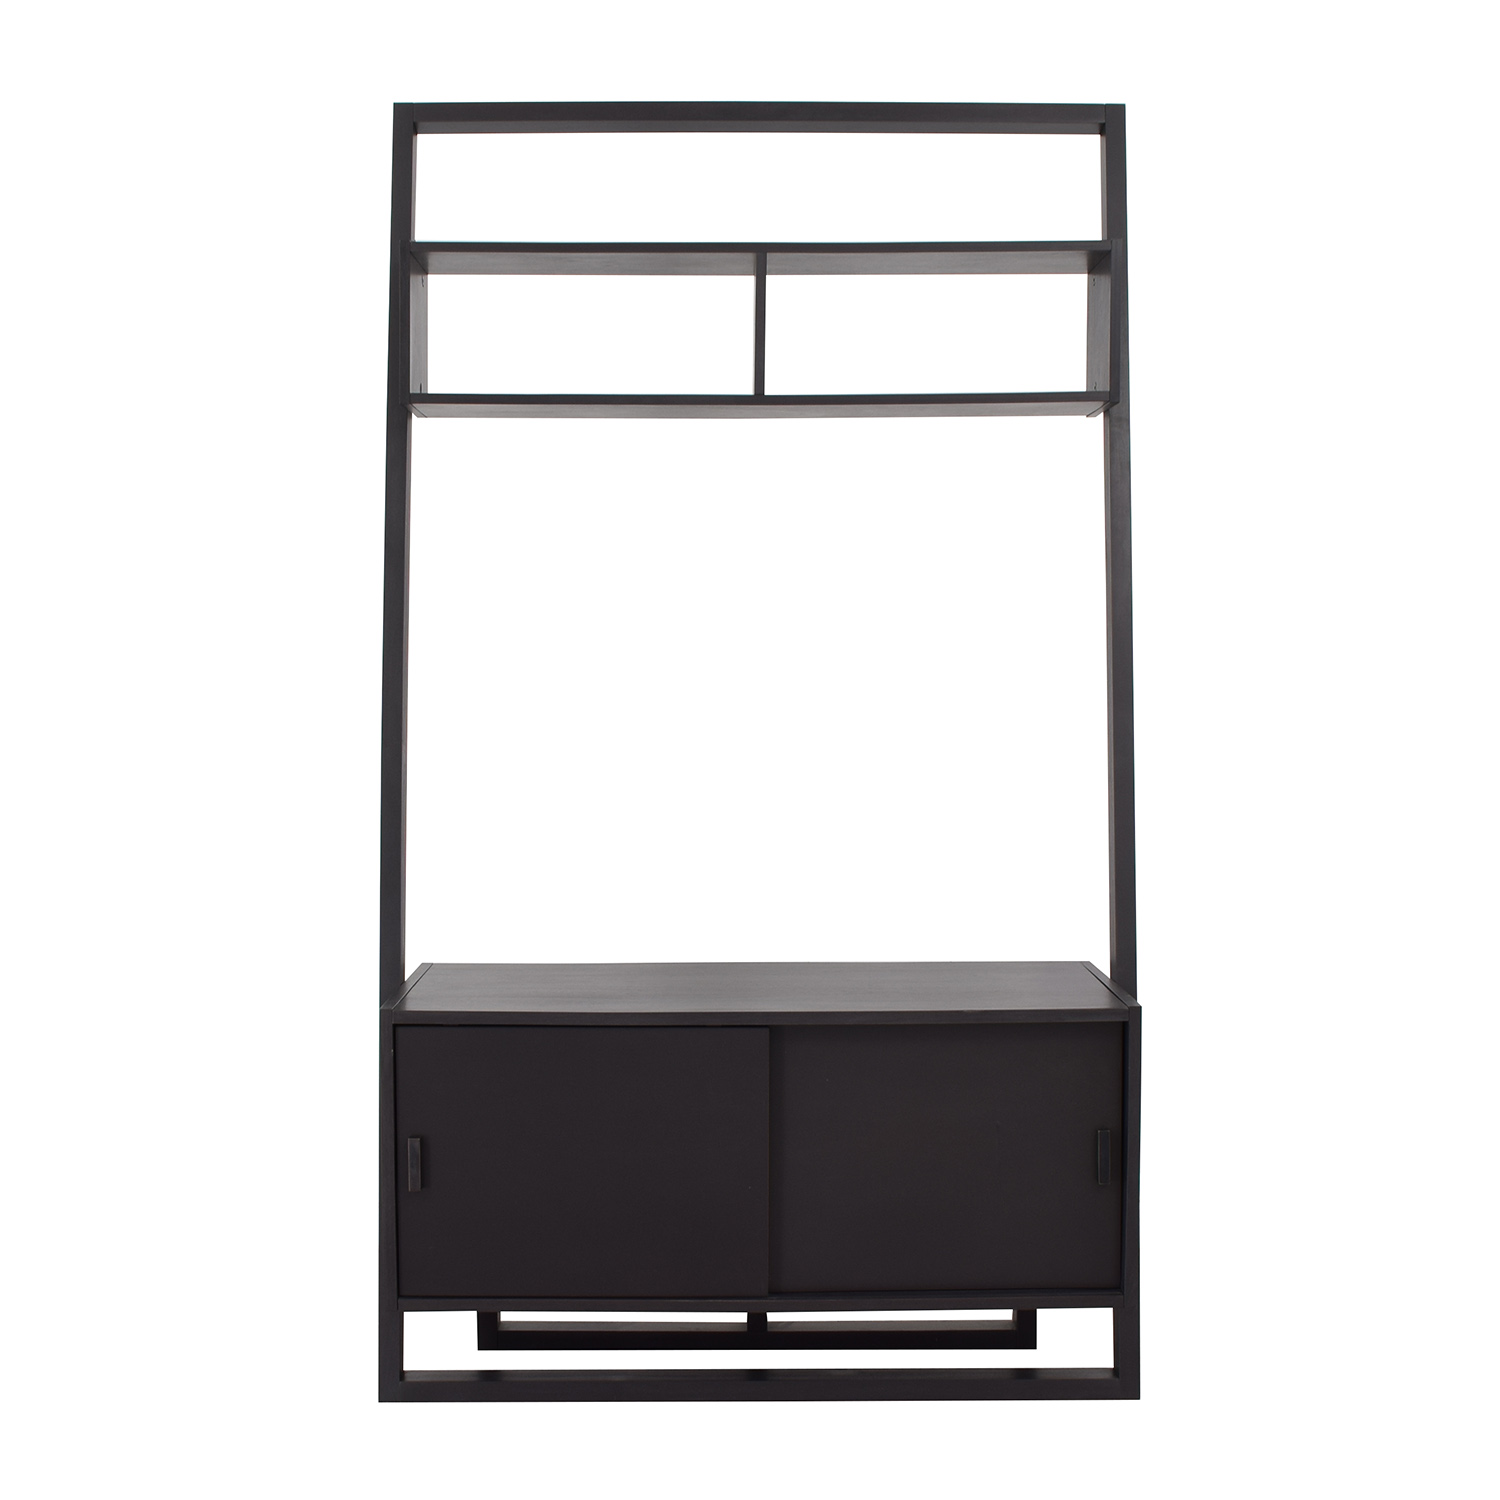 Crate & Barrel Crate & Barrel Sloane Leaning Media Stand nyc